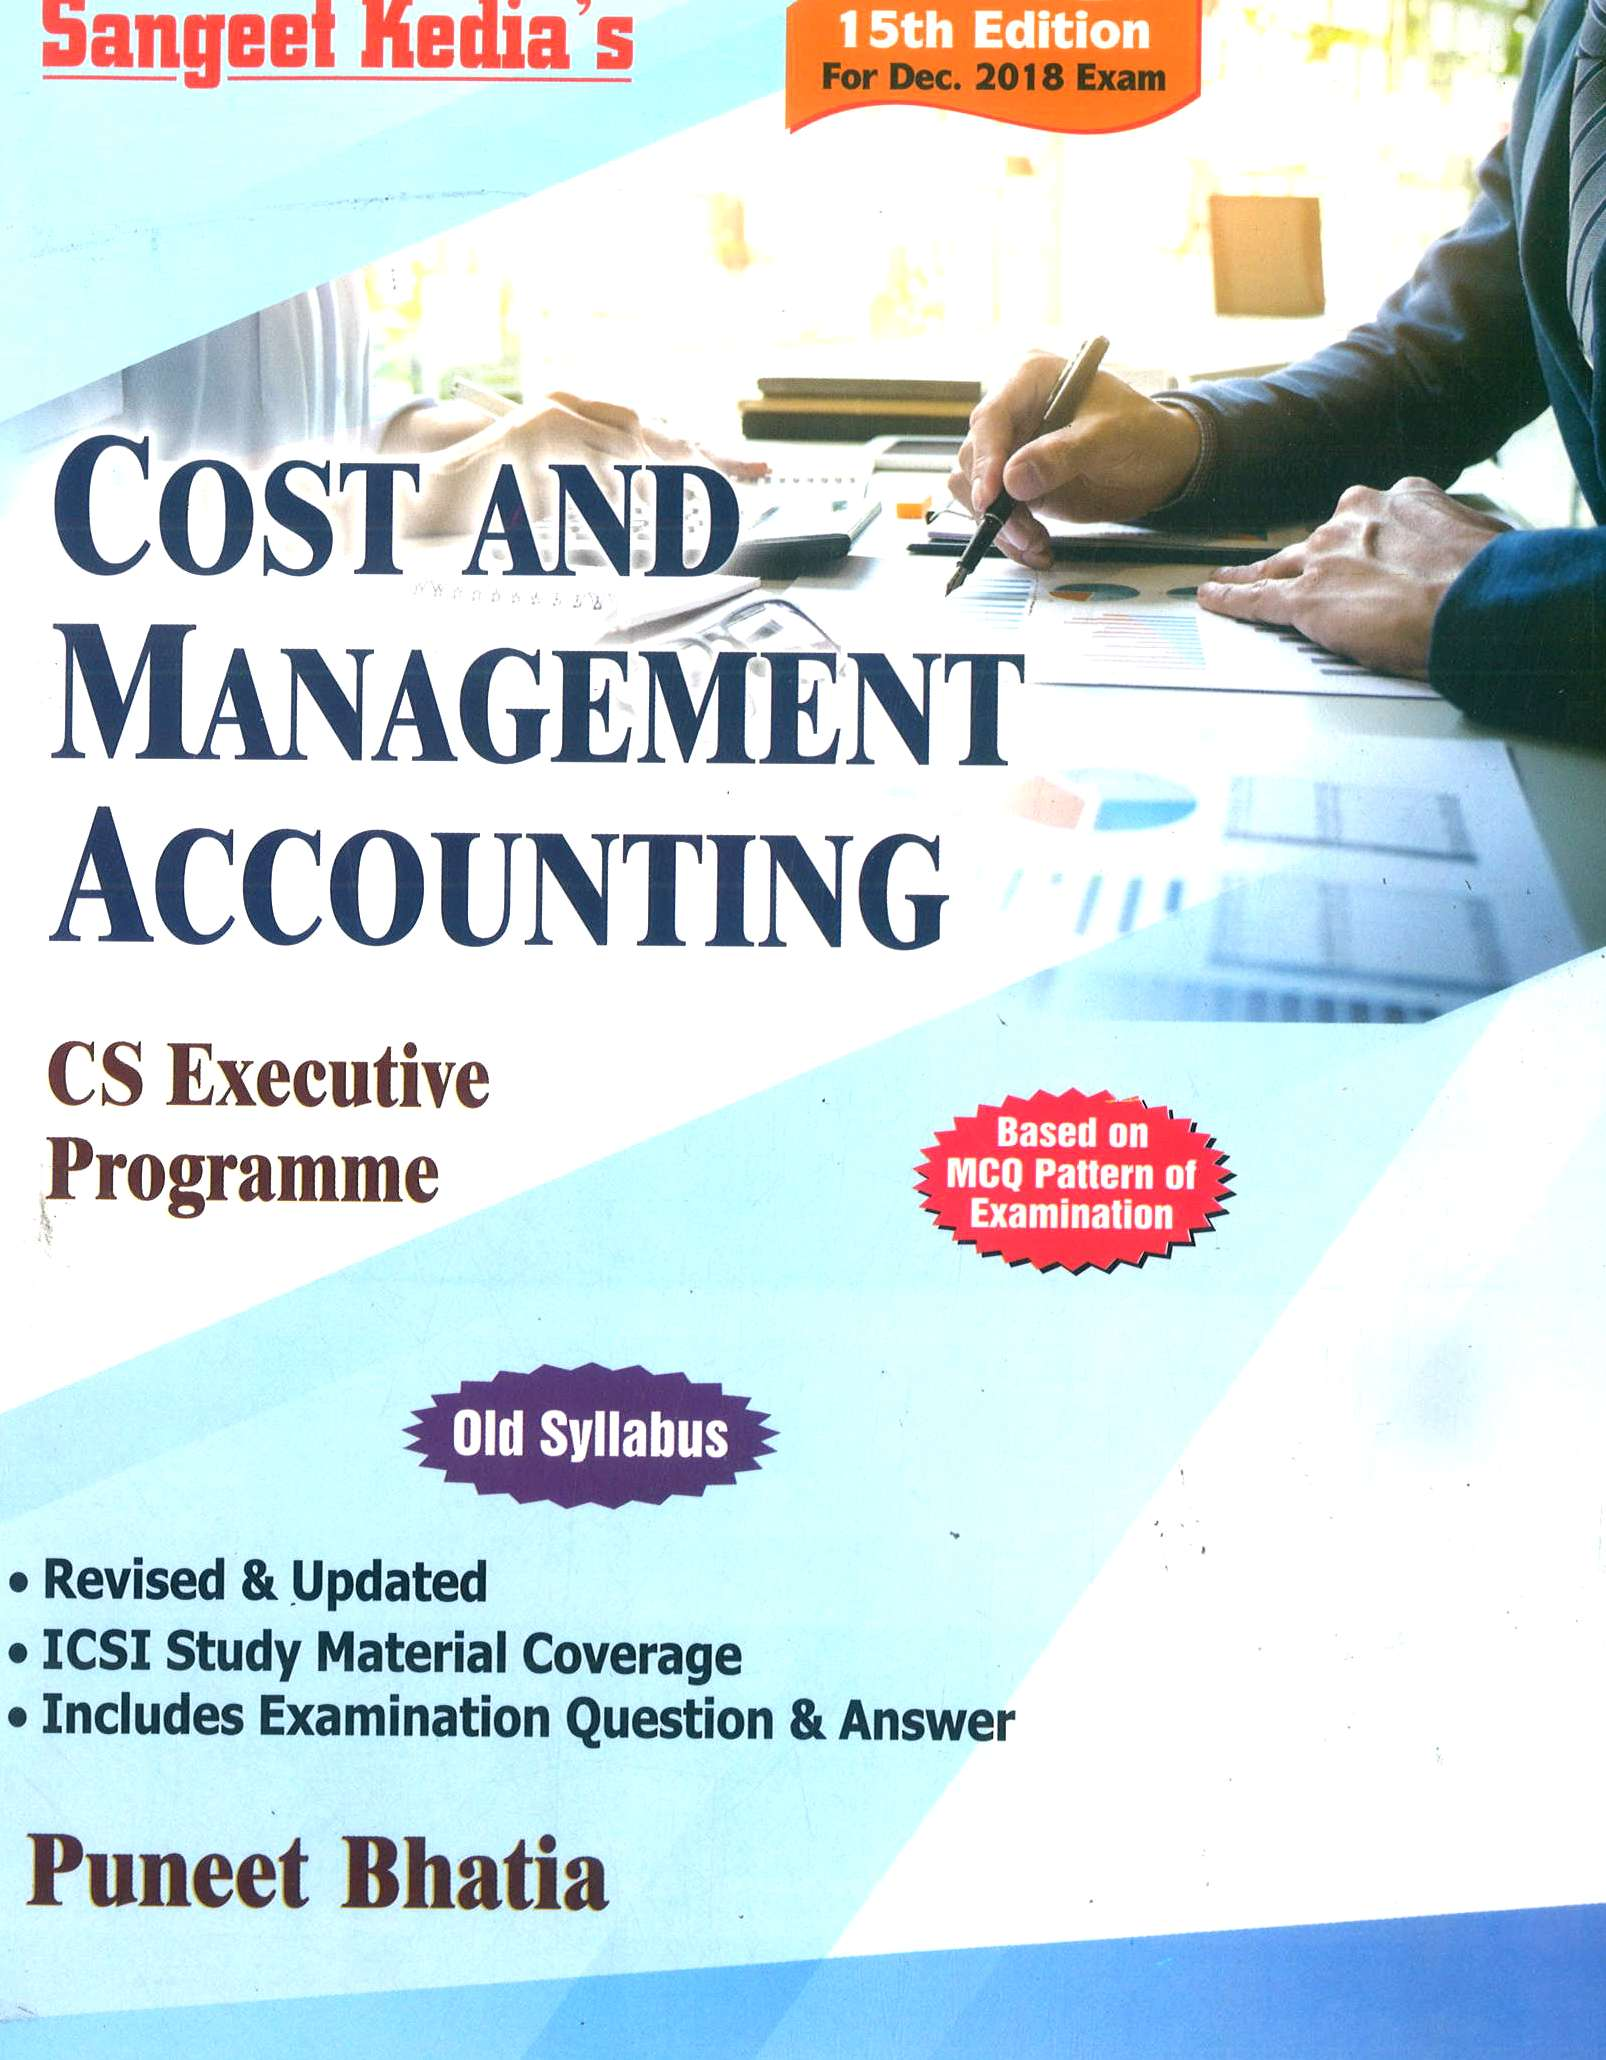 Sangeet Kedia Cost & Management Accounting for CS Executive By Puneet  Bhatia Applicable For Dec 2018 Exam(Pooja Law House Publishing) Edition  15th,